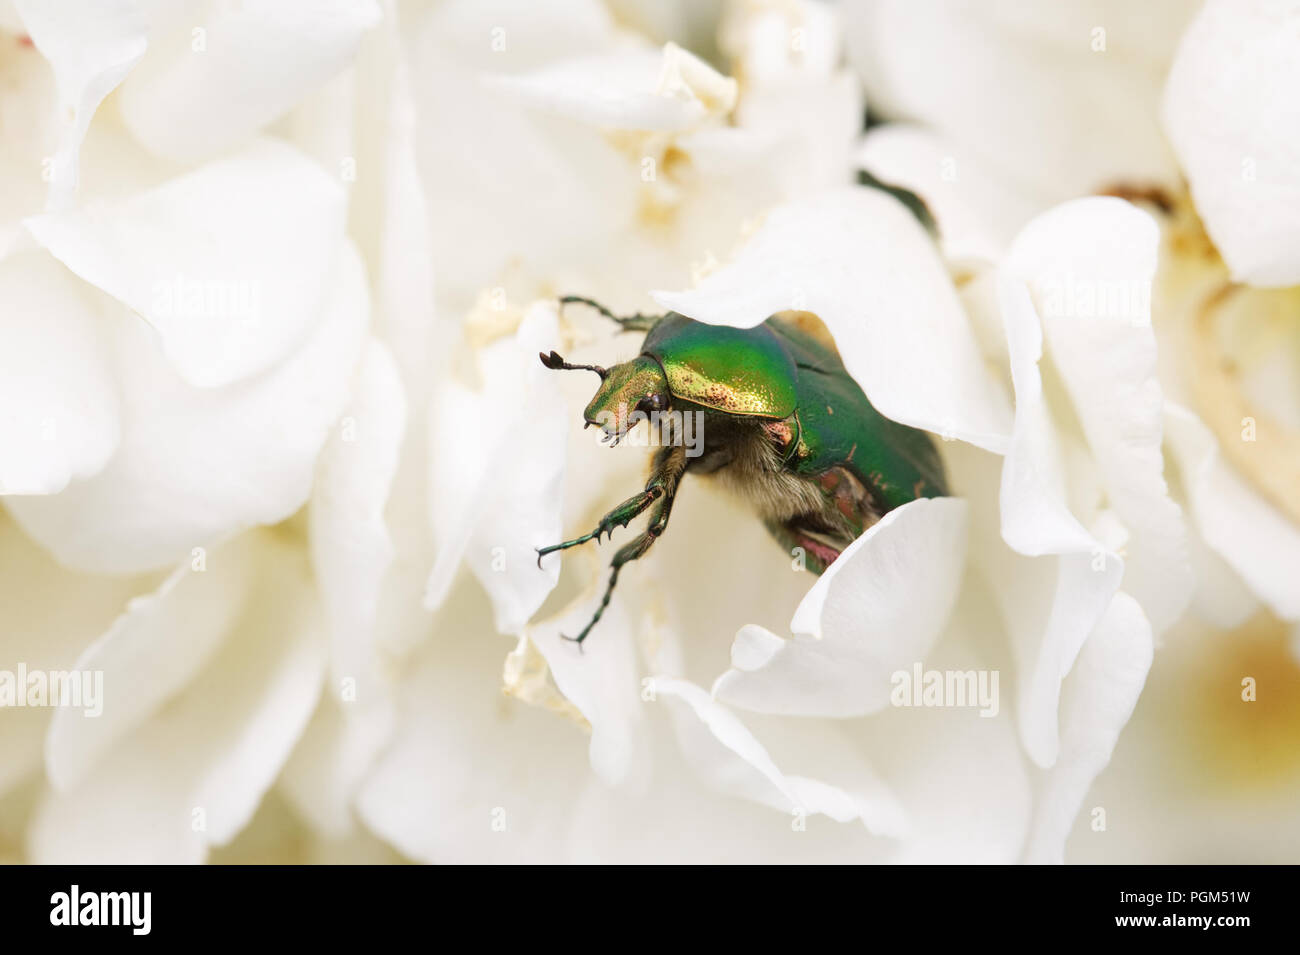 Cetonia aurata emerging from a white rose. Green Rose Chafer beetle. - Stock Image